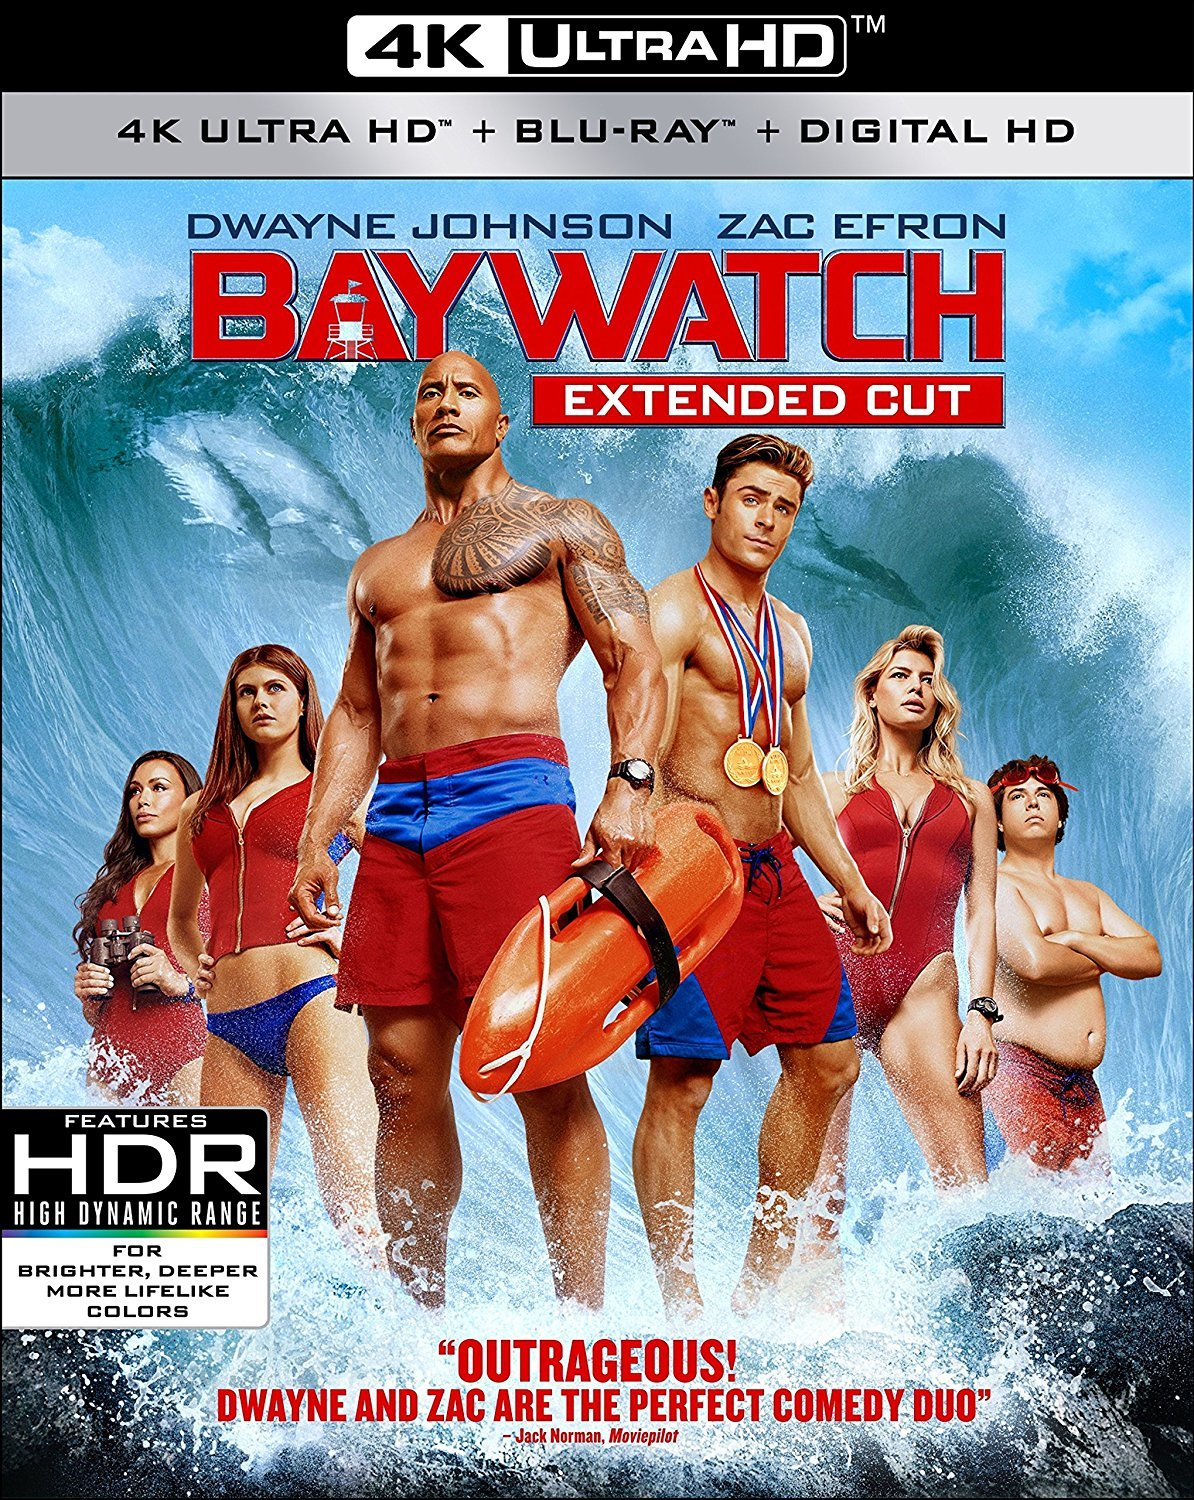 Baywatch (2017) 4K Ultra HD UHD Blu-ray